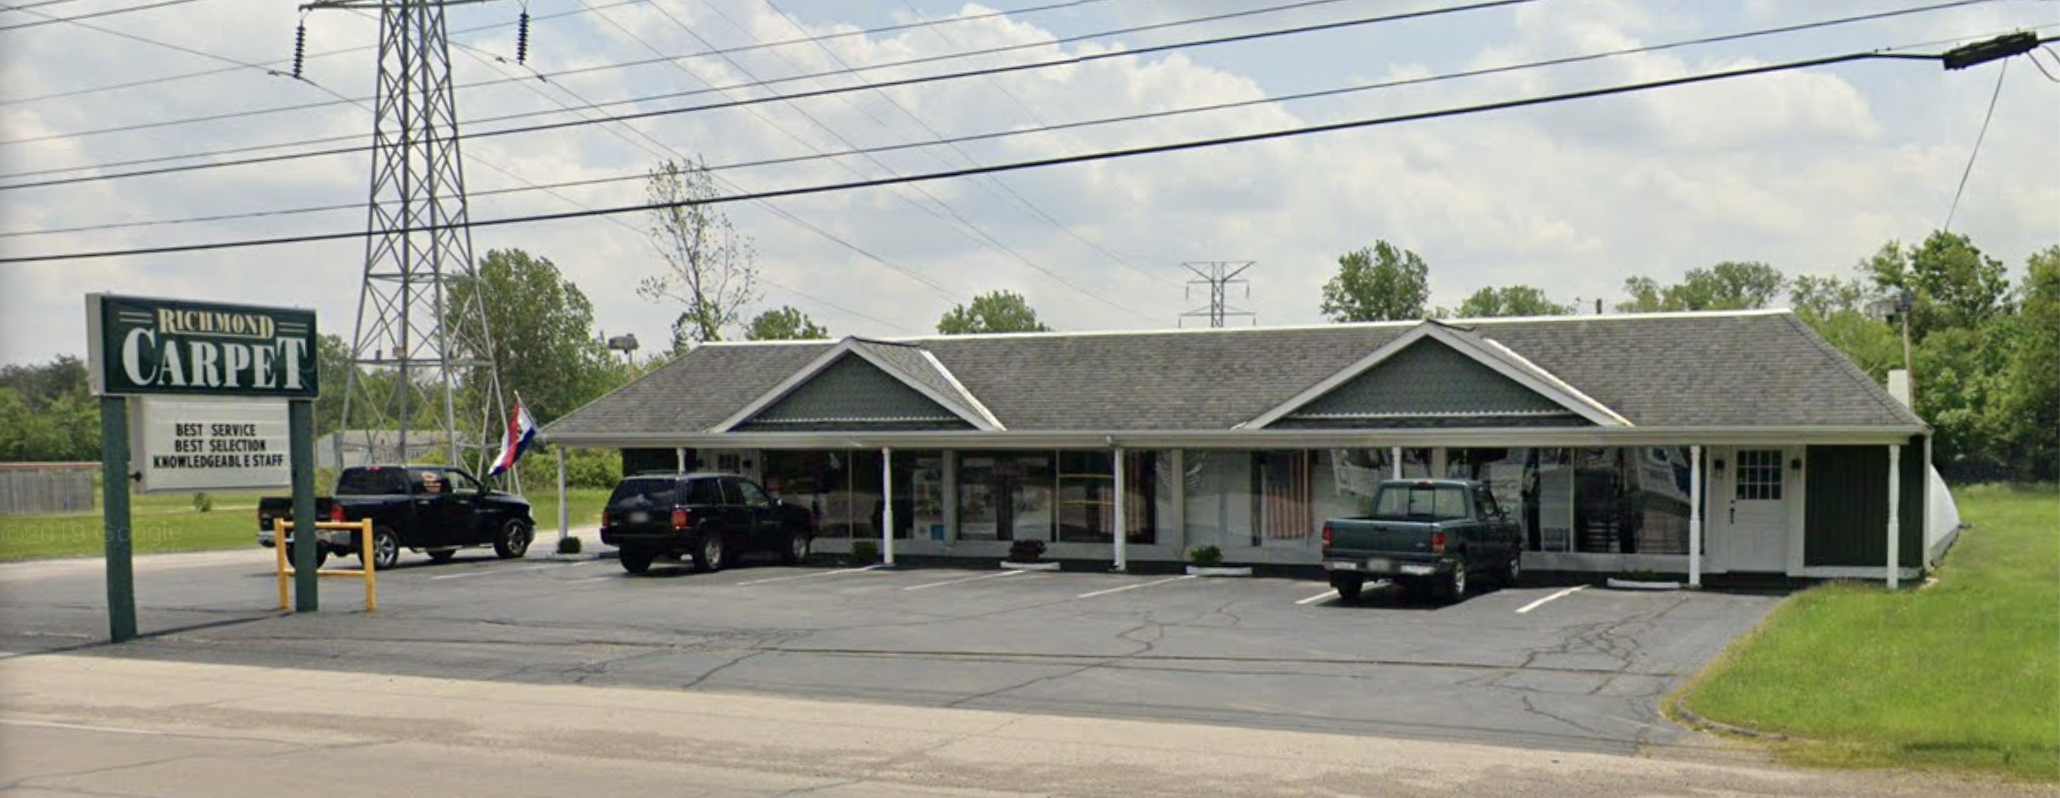 Richmond Carpet Outlet - 3911 National Rd W, Richmond, IN 47374